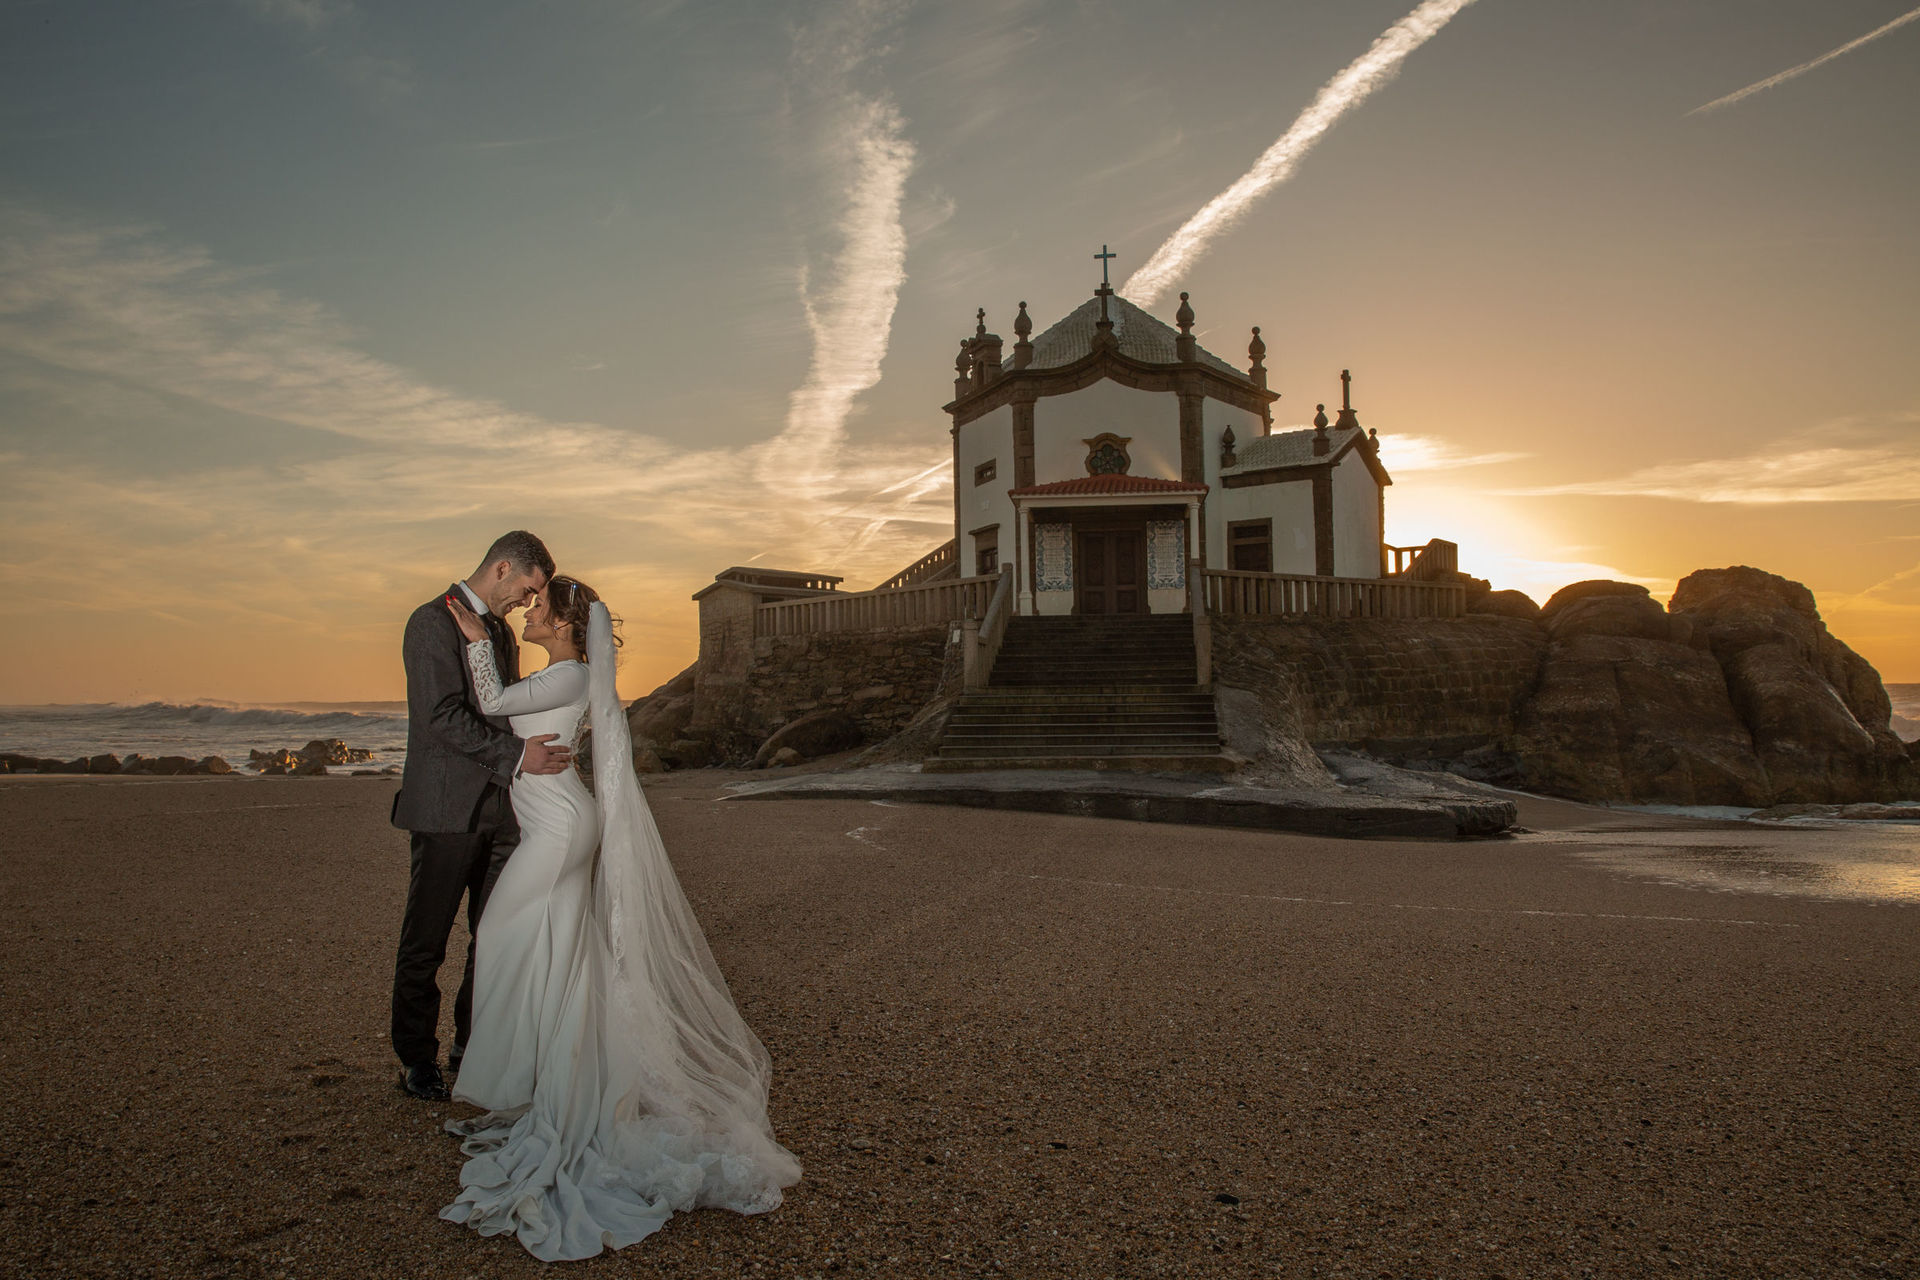 Sessão fotográfica: Trash the Dress no Porto - Portugal da Wanessa e João